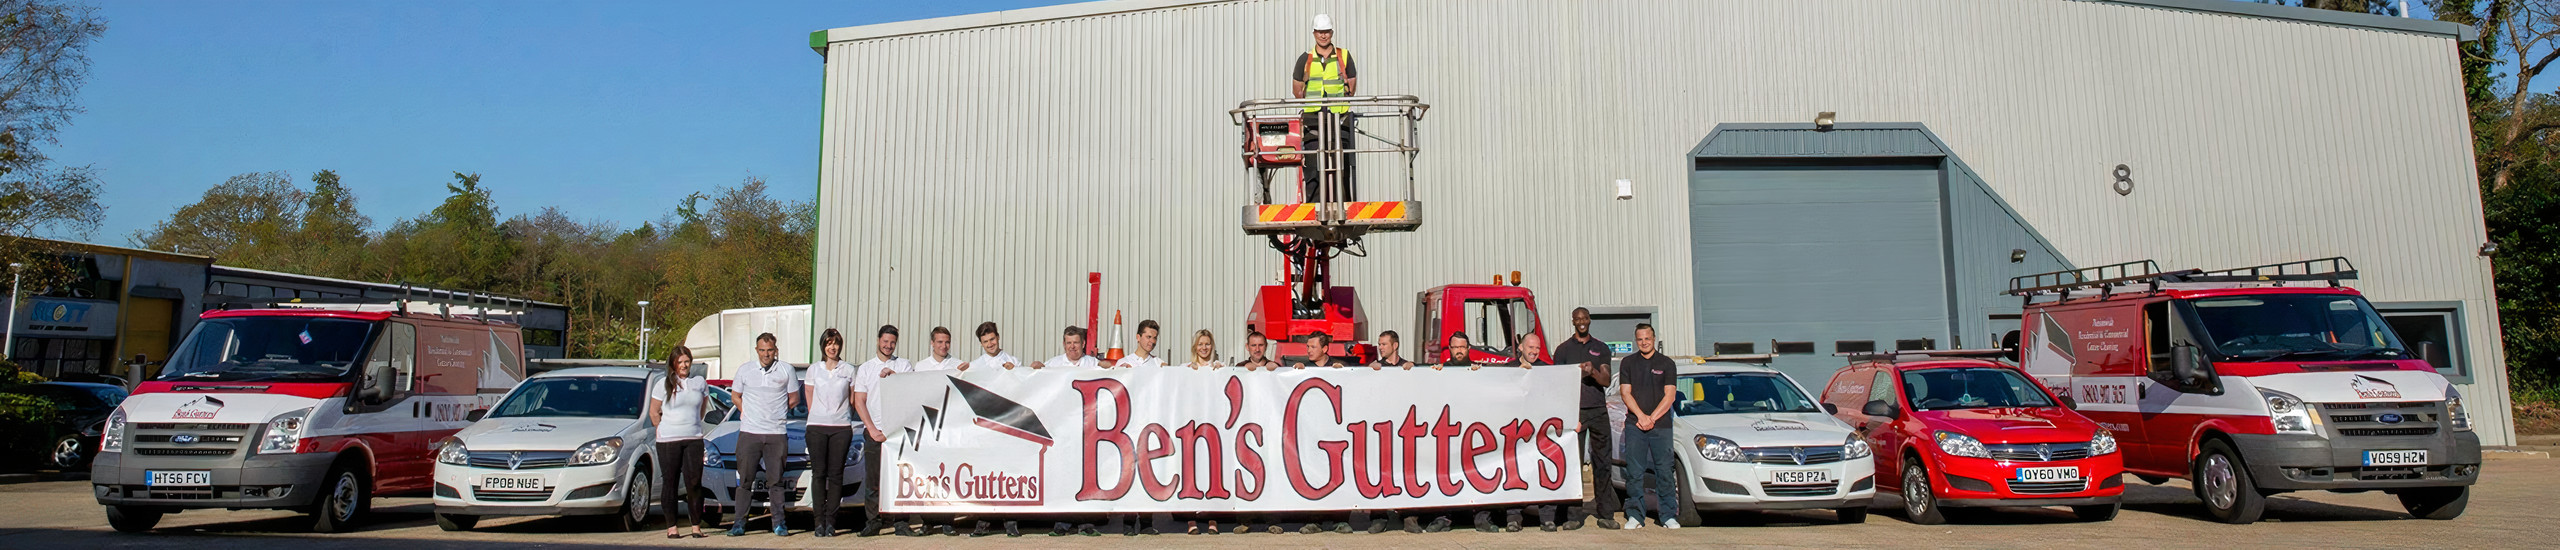 bens gutters Maryport